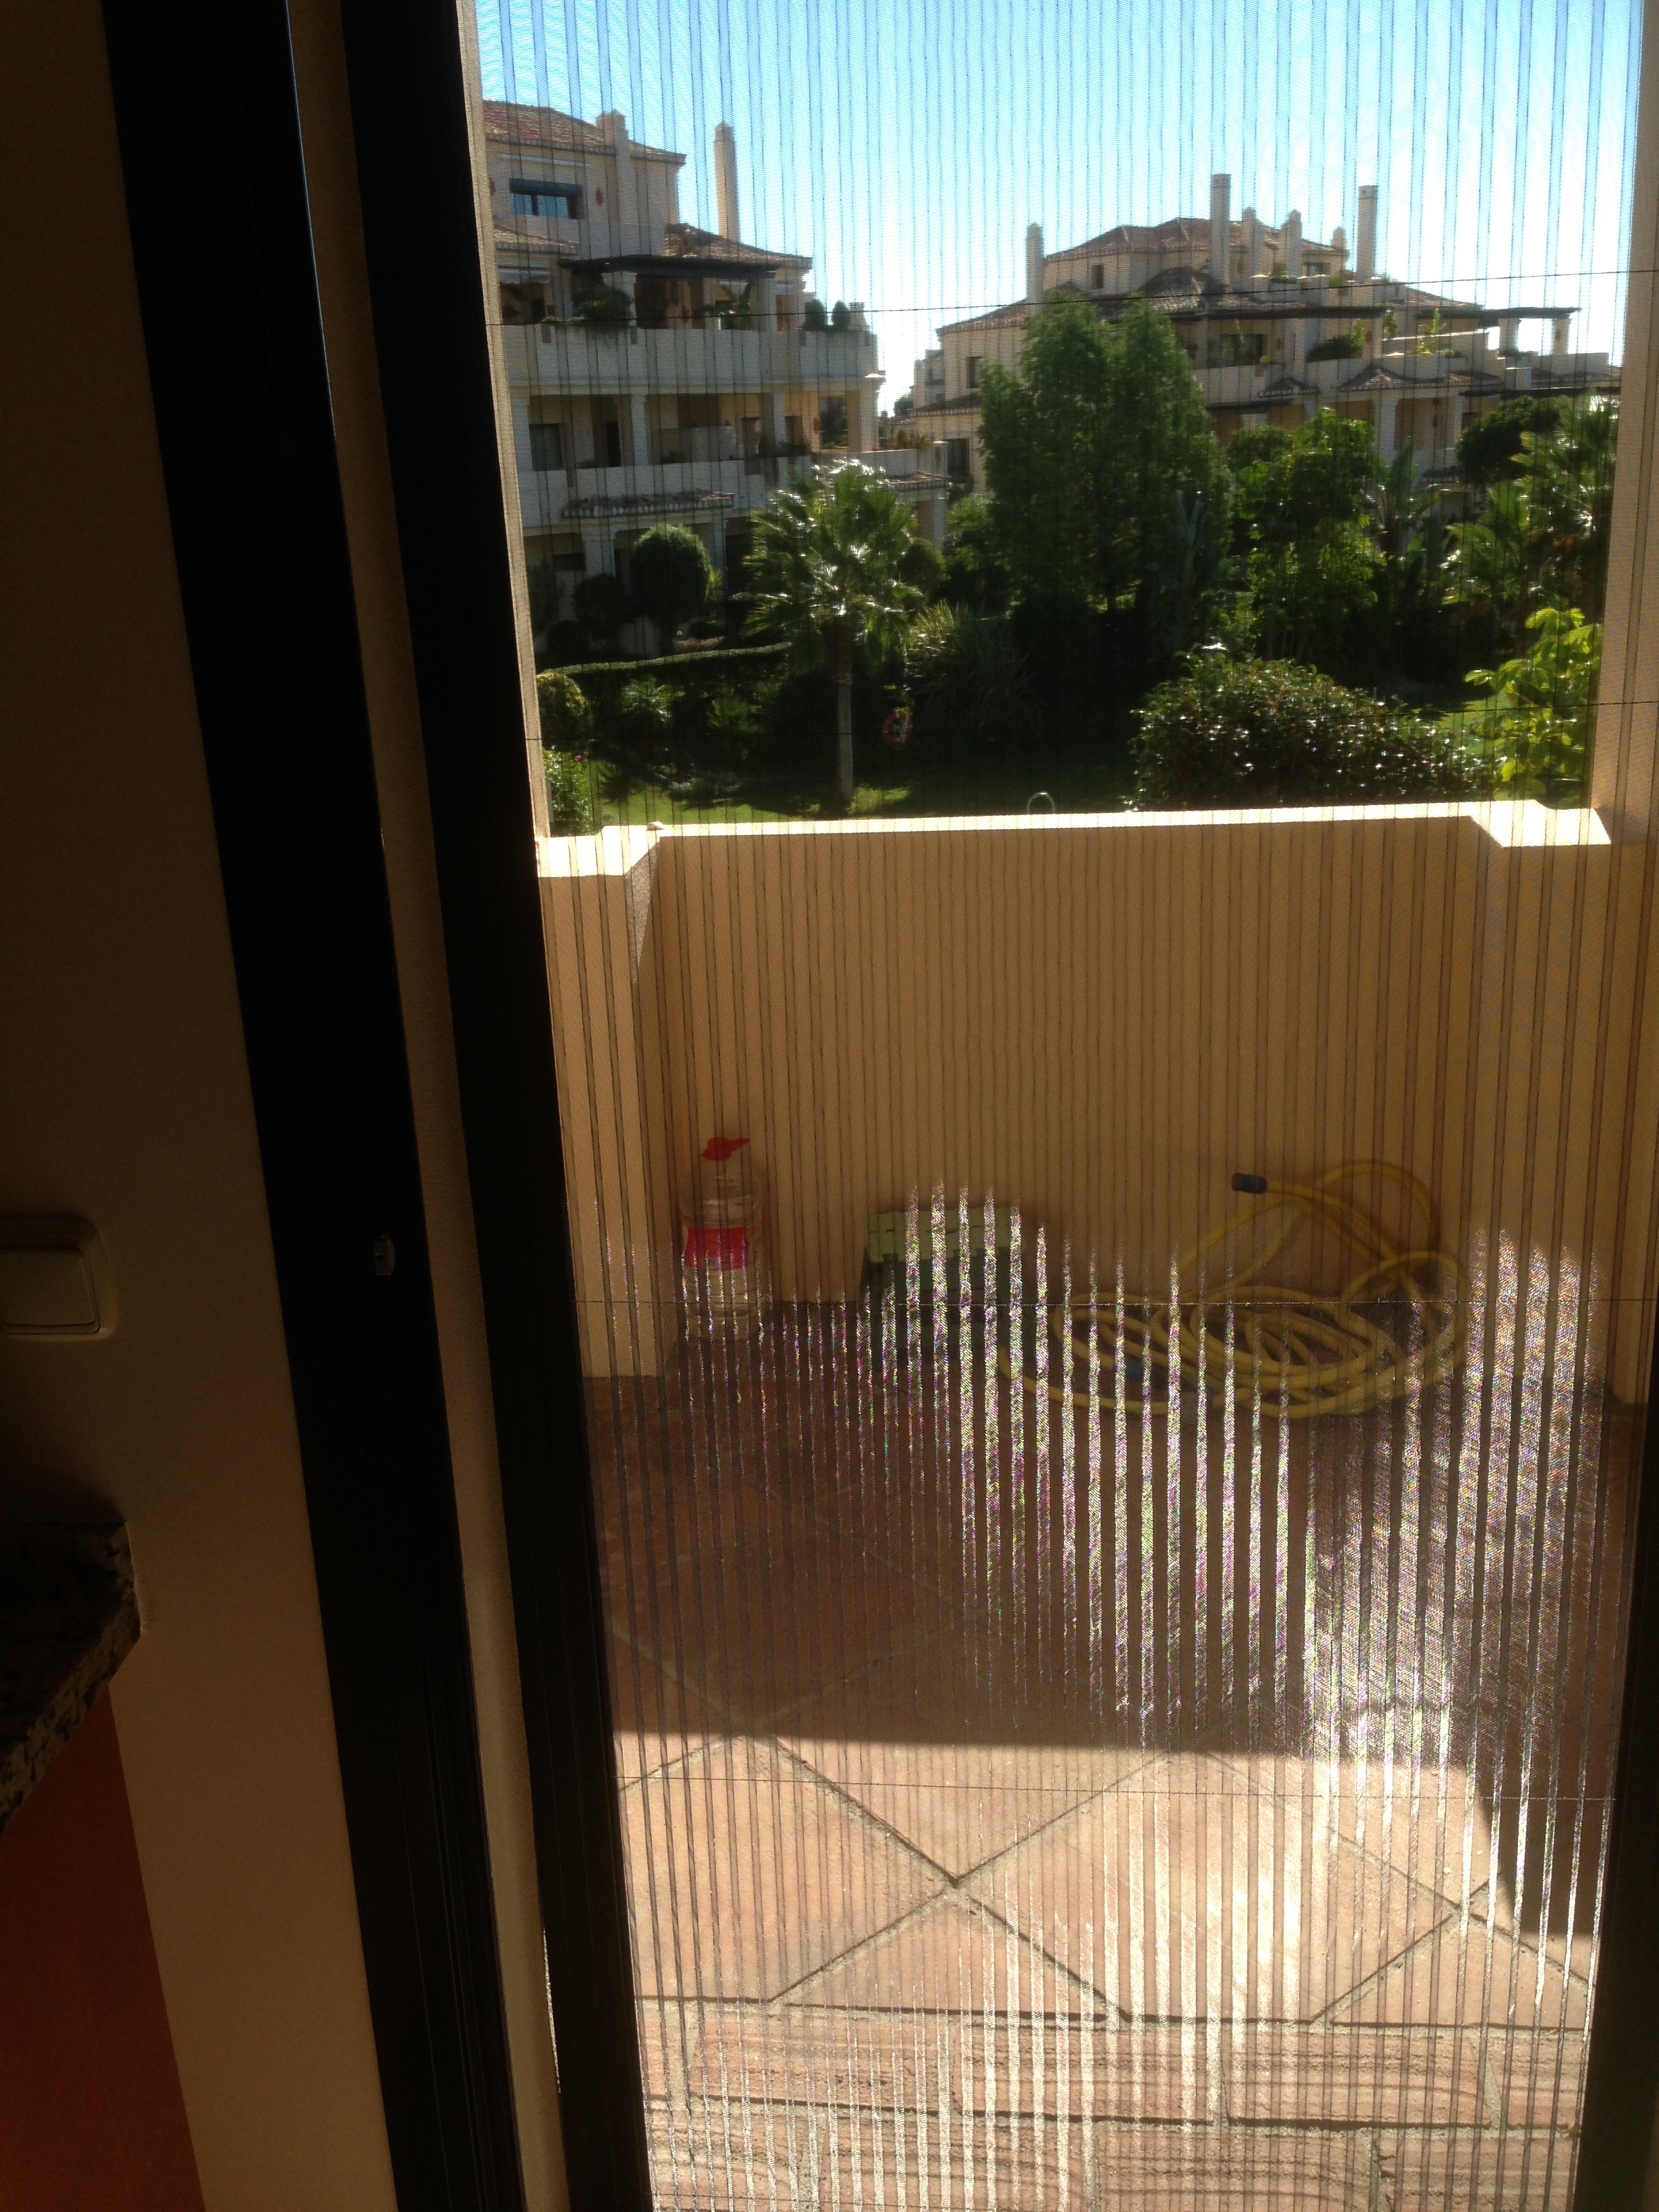 Pleated Mosquito Screen Looking out